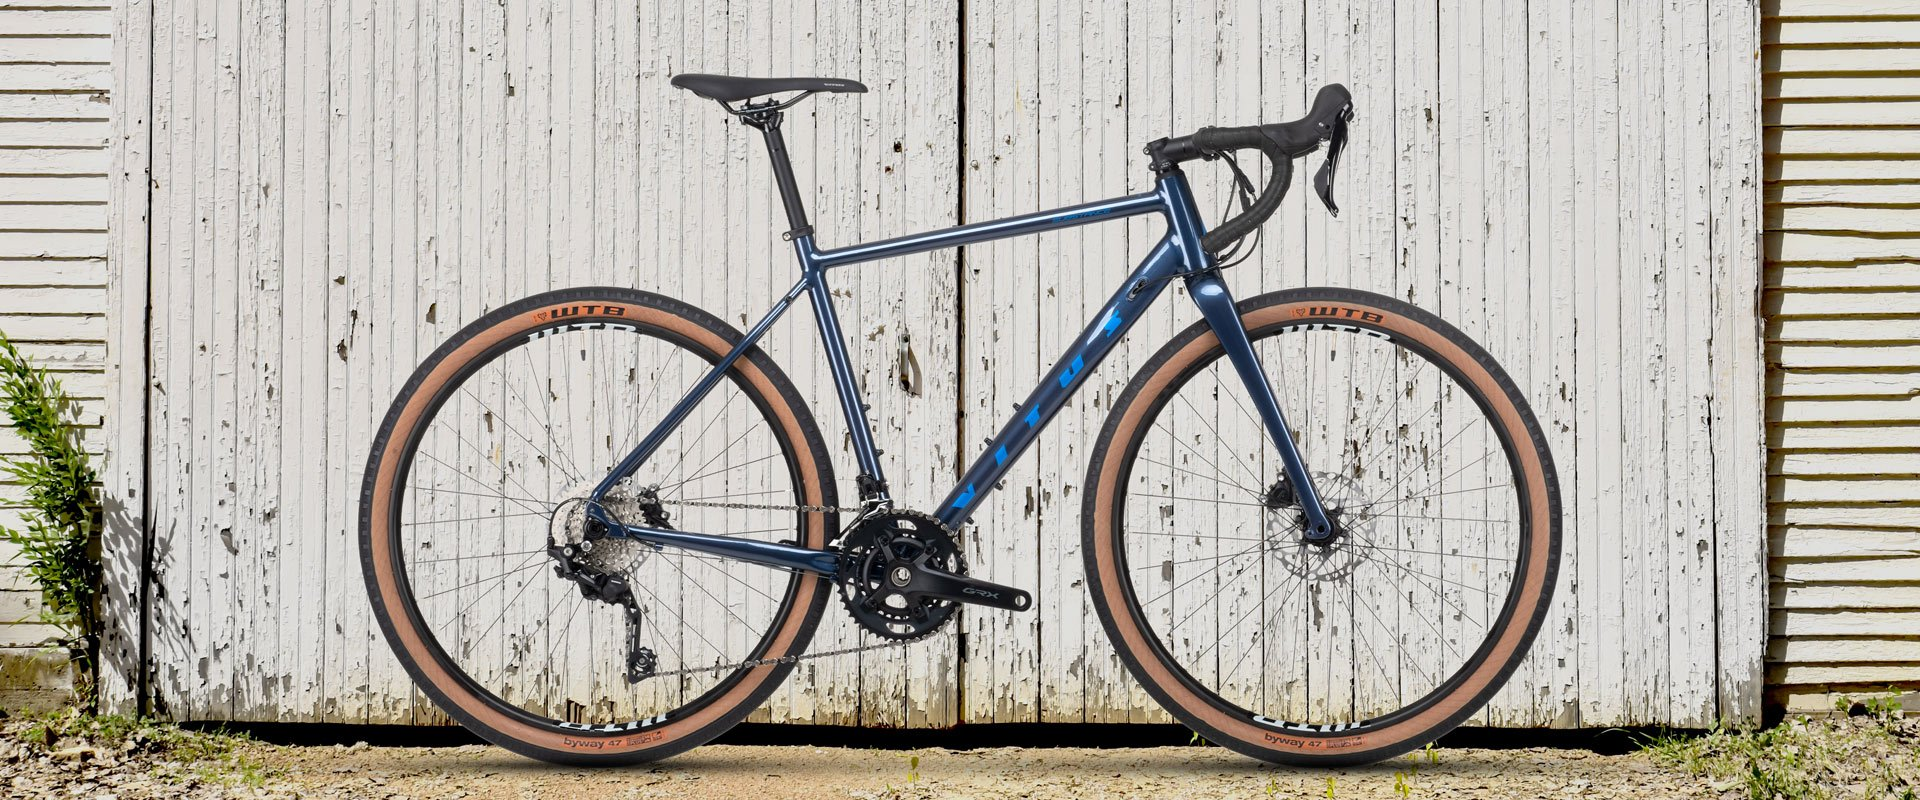 Vitus Substance VR 2 Adventure Road Bike